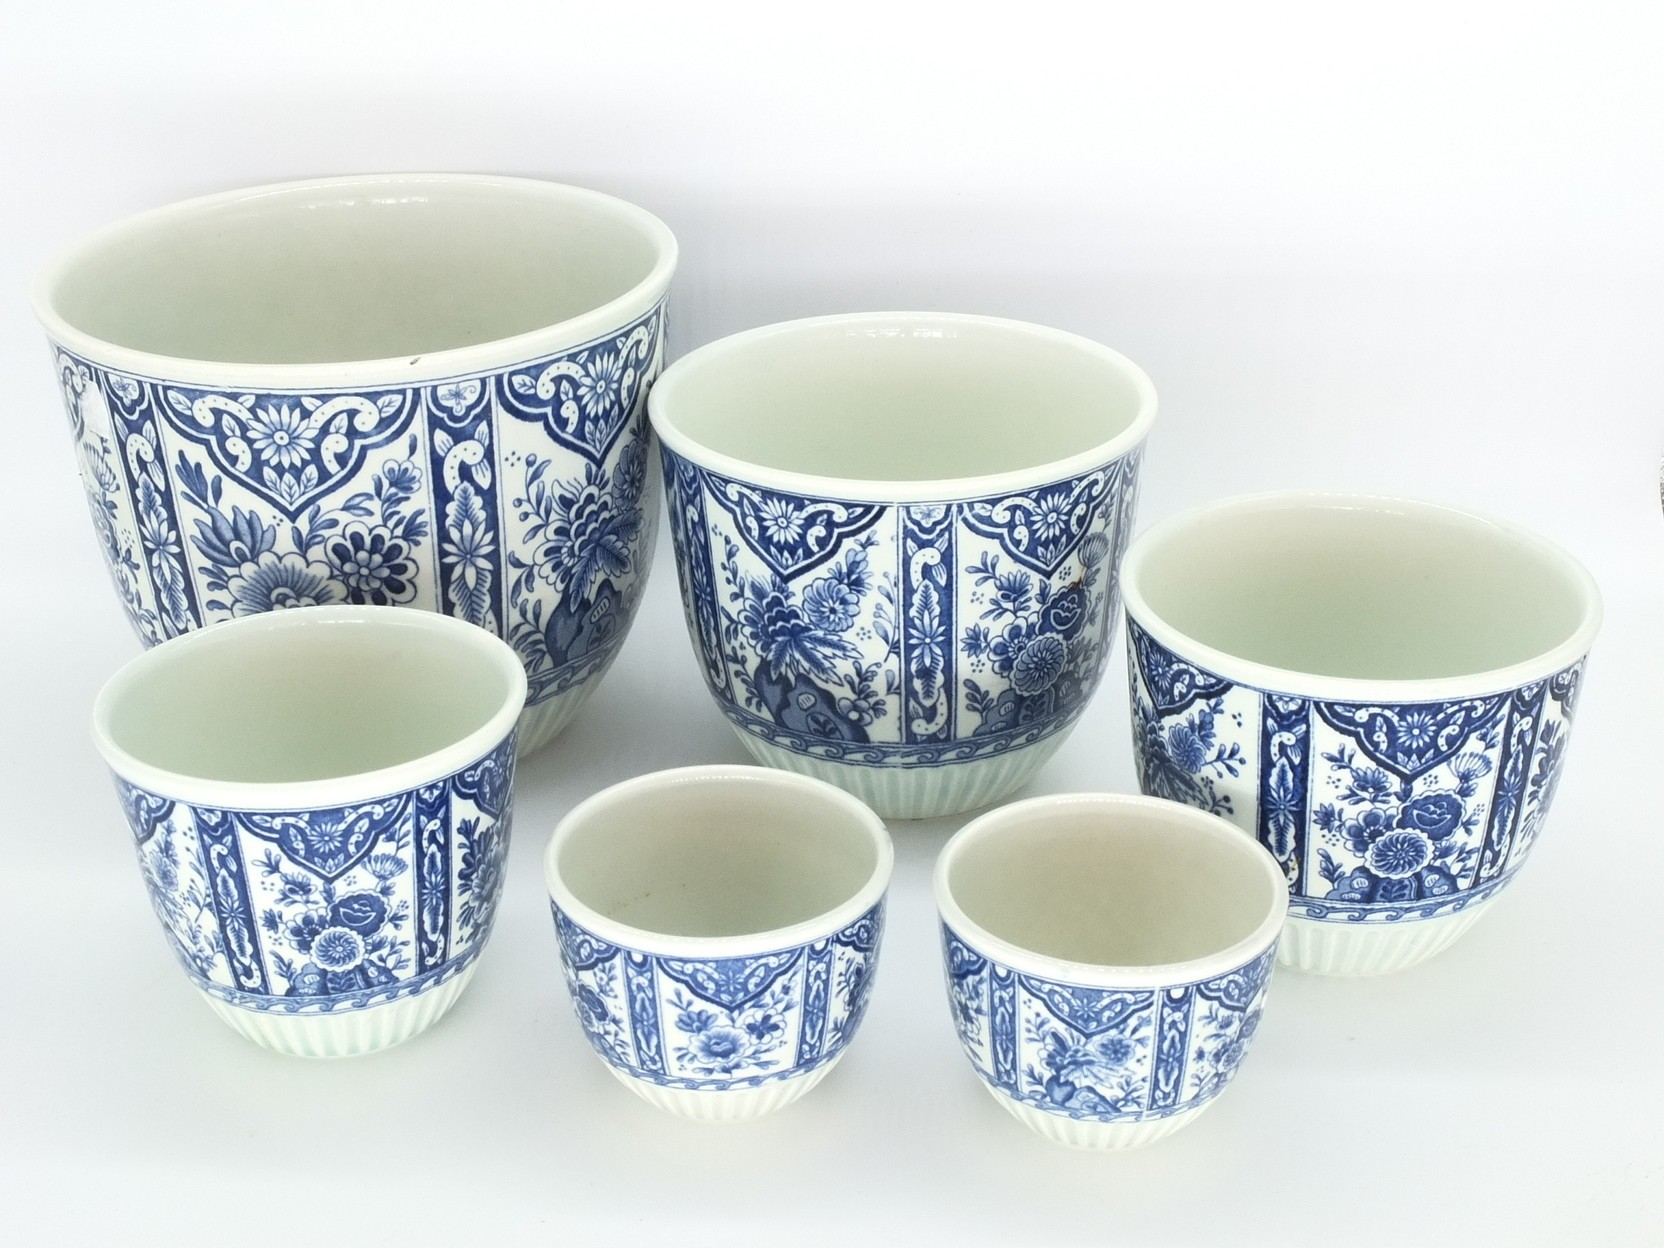 'Group of Delft Transfer Printed Graduating Bowls'